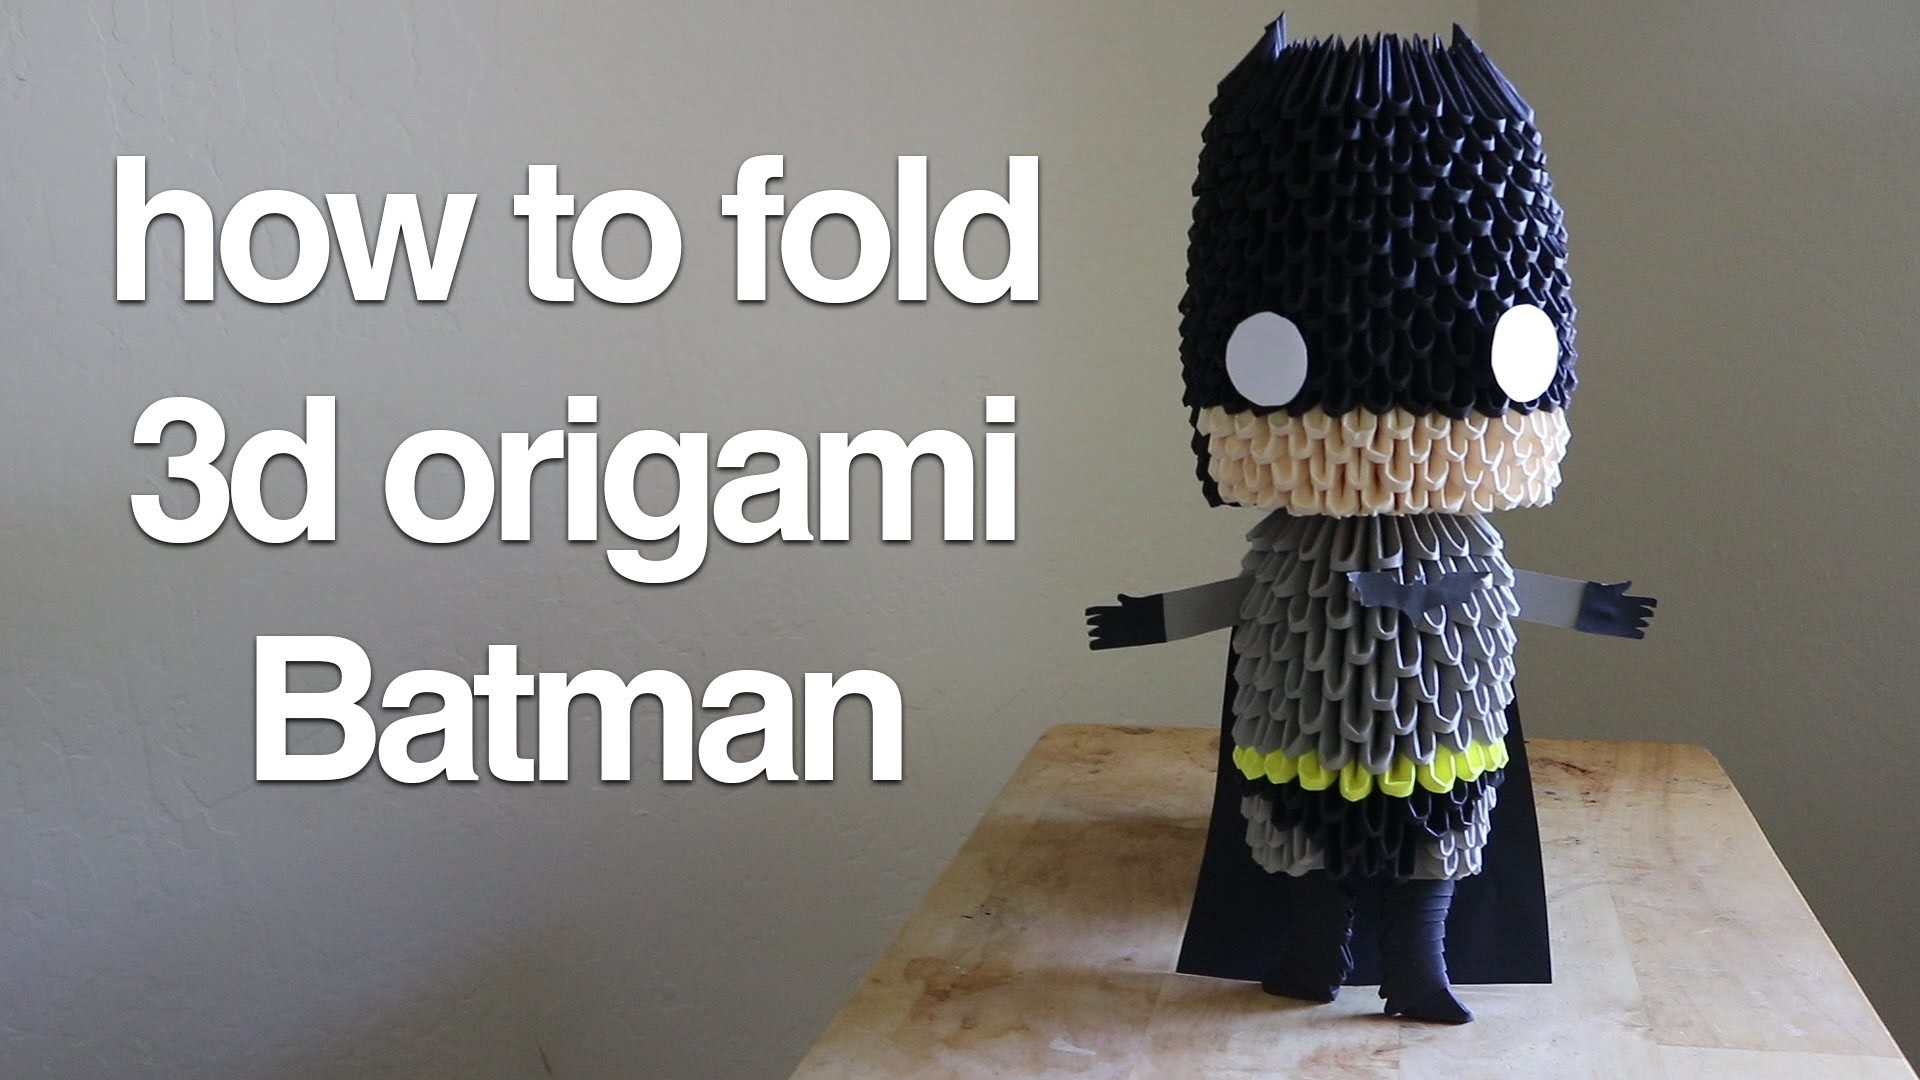 How to fold 3d origami Batman